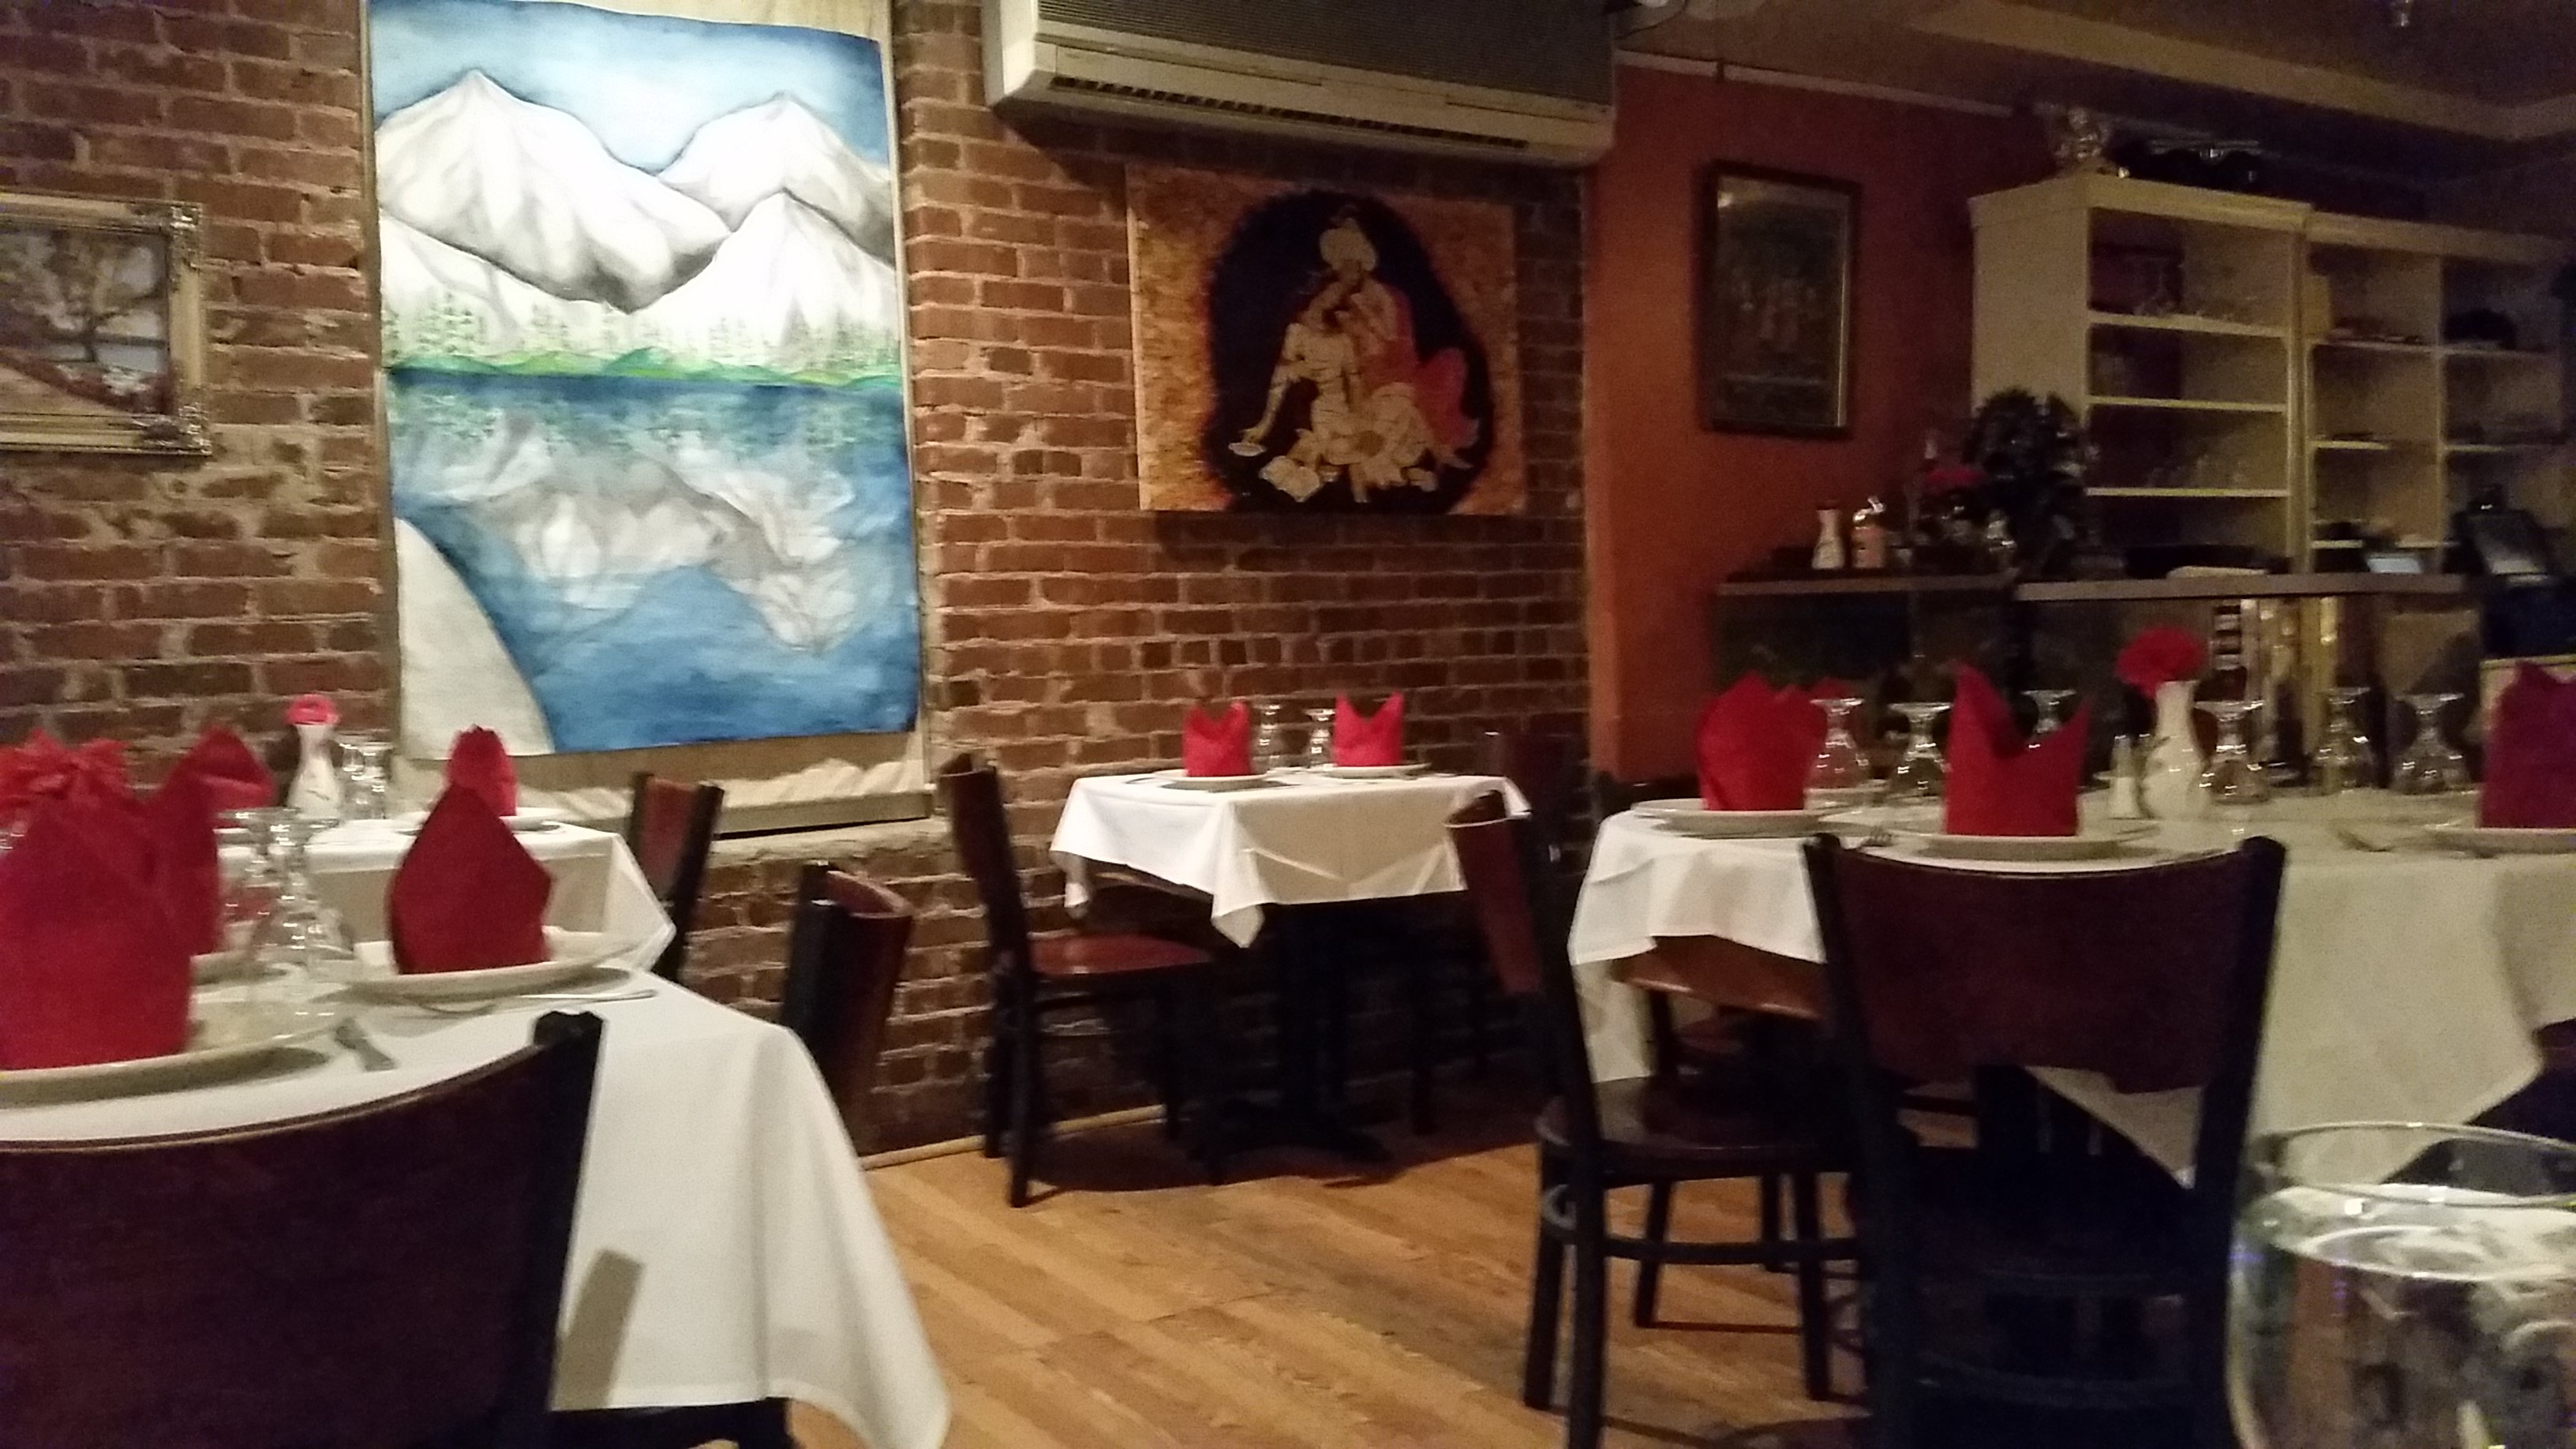 Mexican Village Princeton Nj As An Avid Food Lover I Am Consistently Trying To Find Compelling Restaurants Satisfy My Cravings In Addition